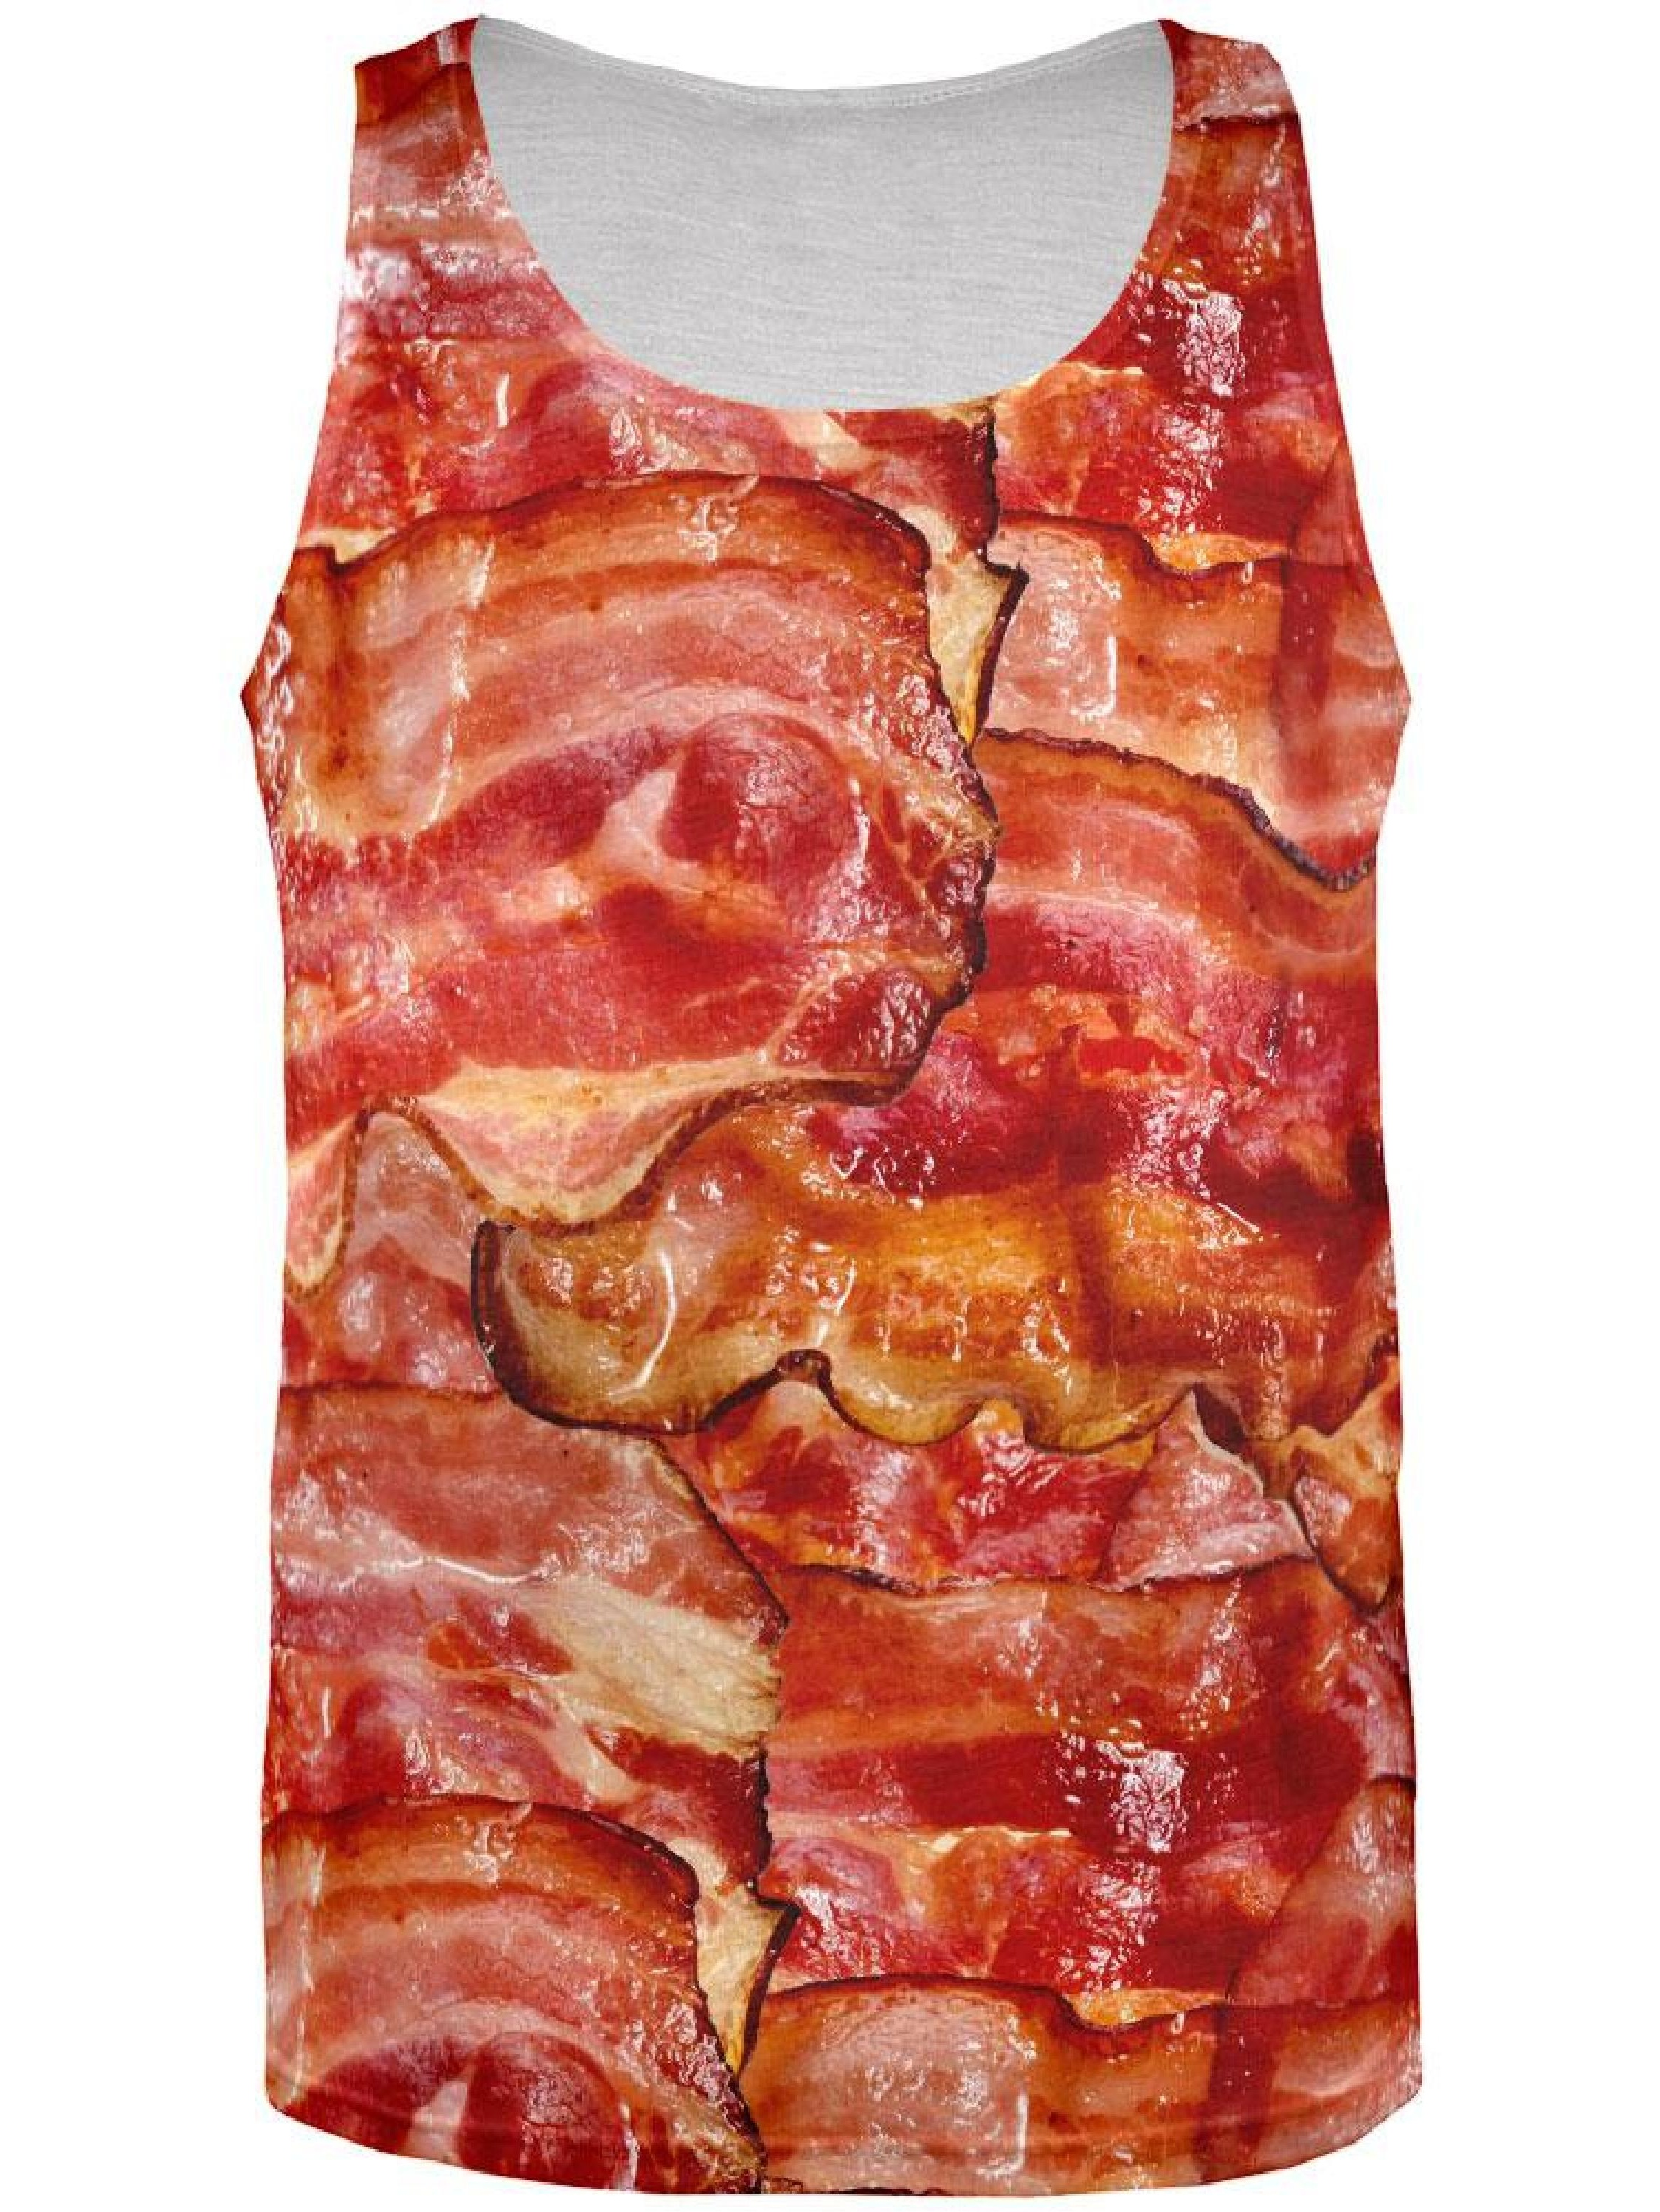 Bacon All Over Adult Tank Top